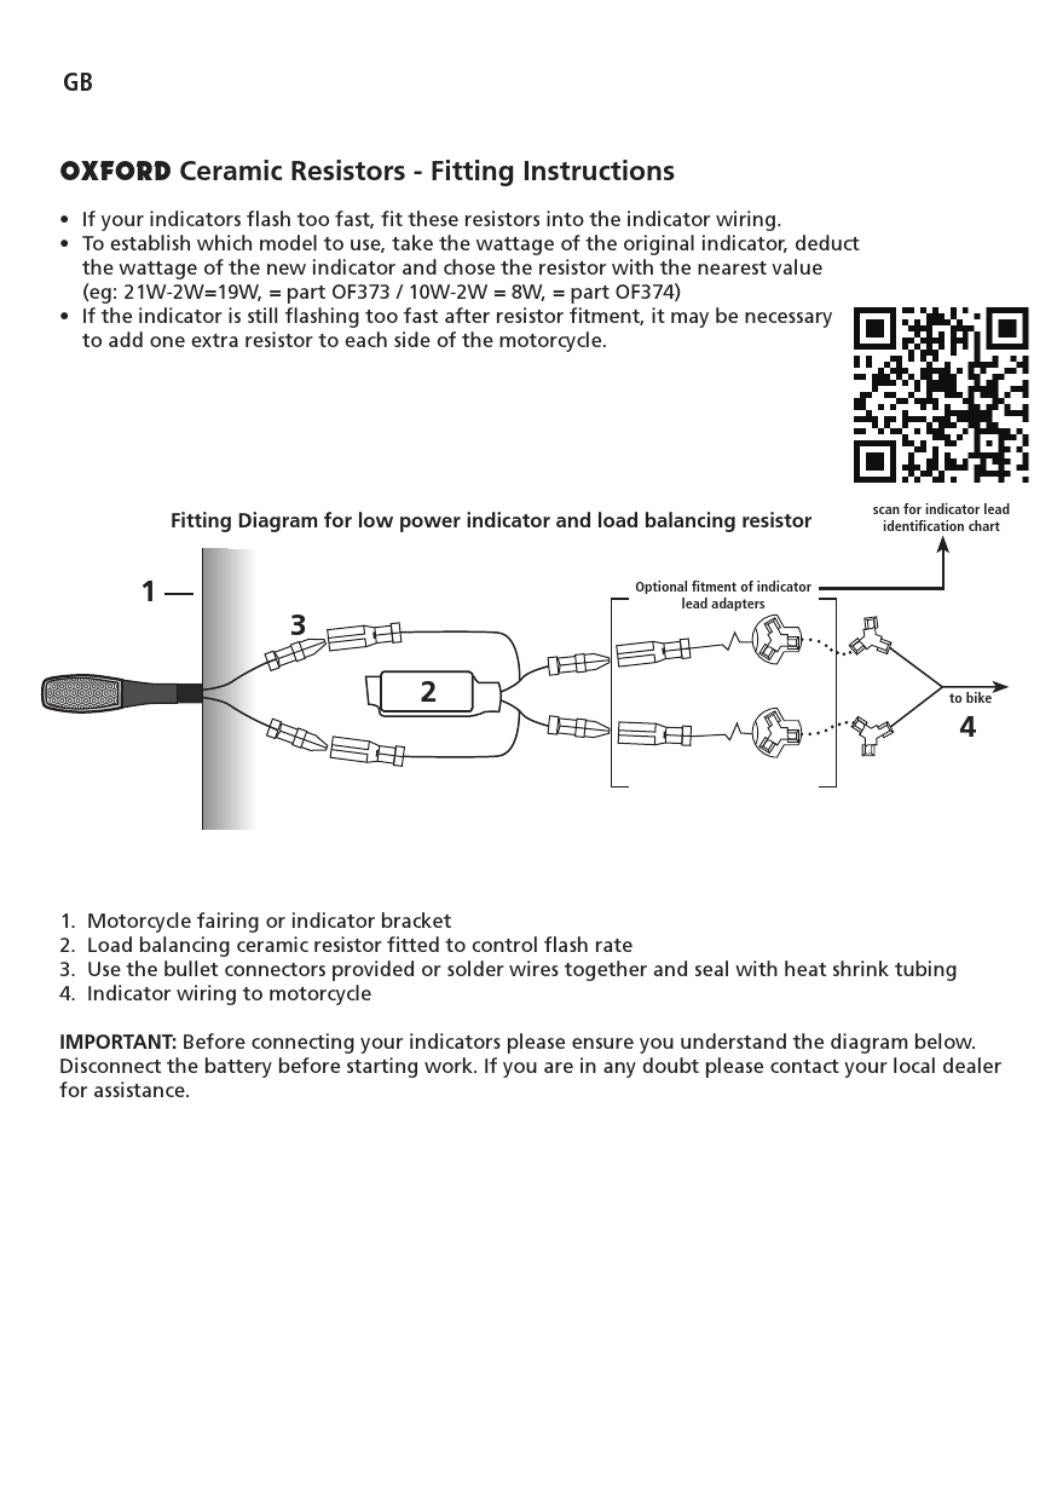 Ceramic Resistor Instructions By Oxford Products Issuu